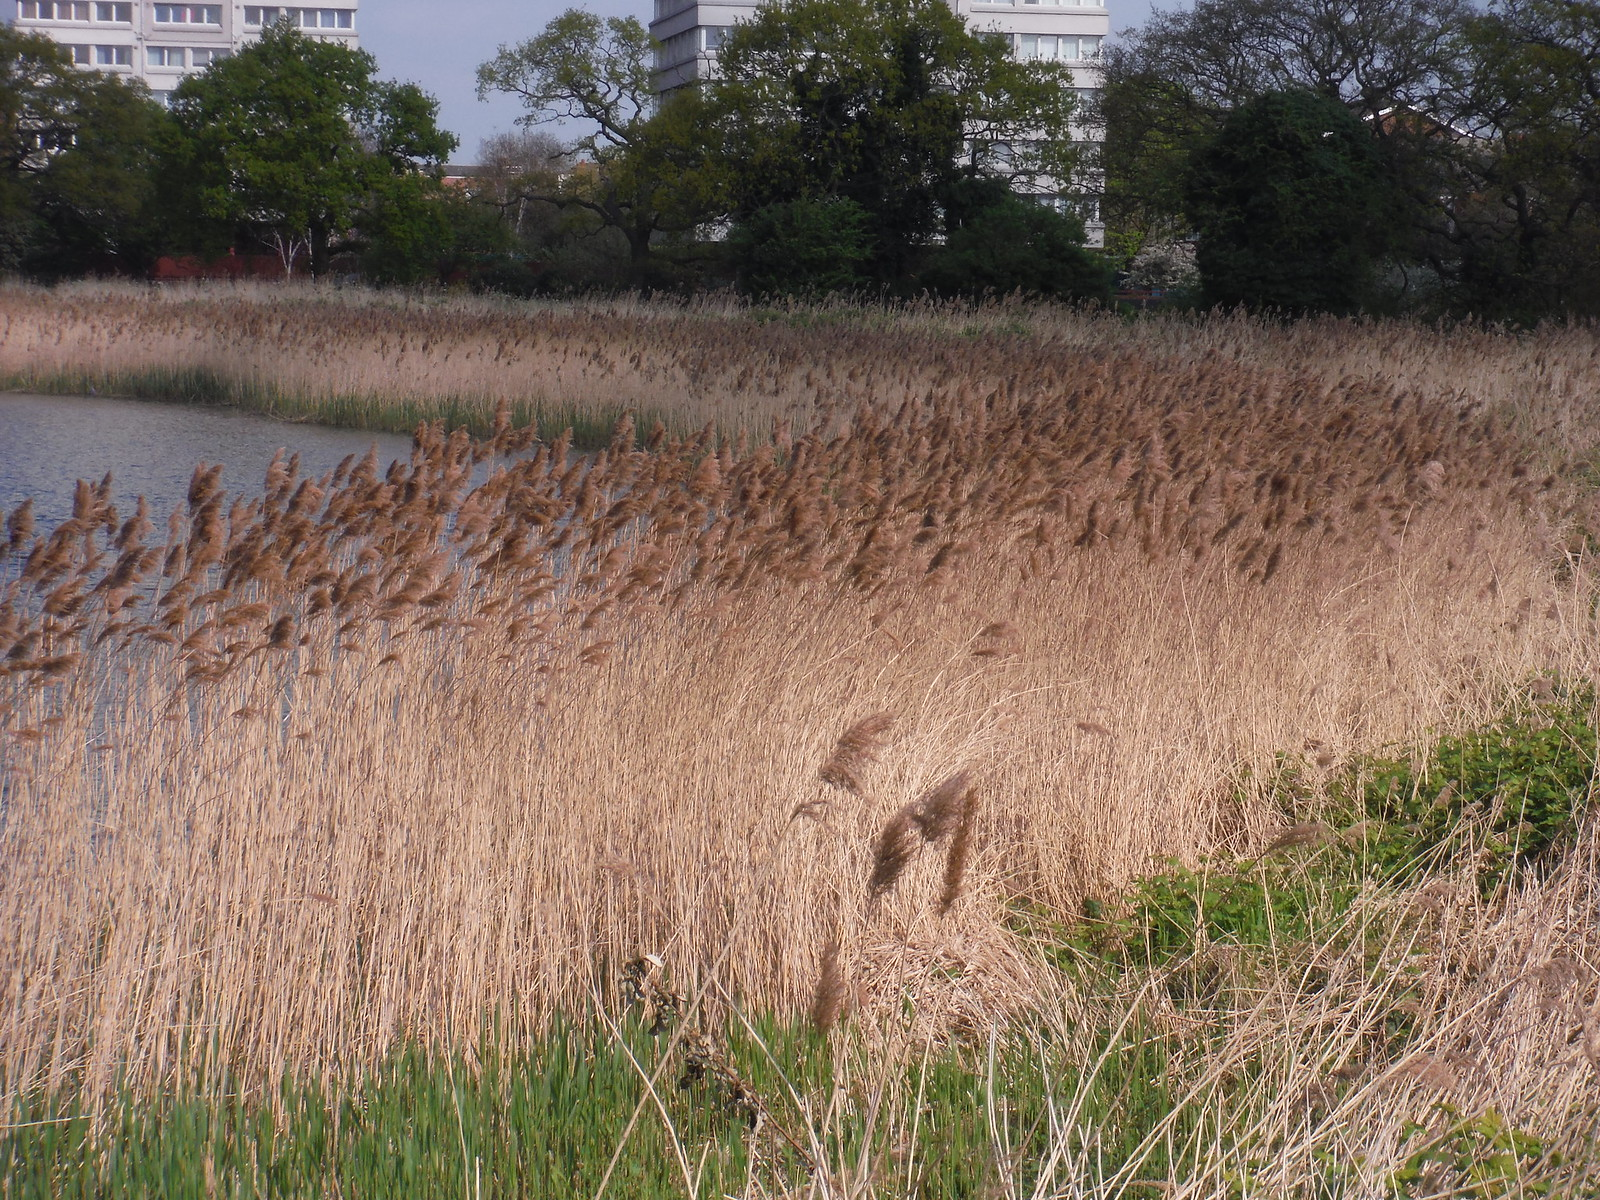 Reed Beds, Woodberry Wetlands SWC Short Walk 26 - Woodberry Wetlands (Stoke Newington Reservoirs)